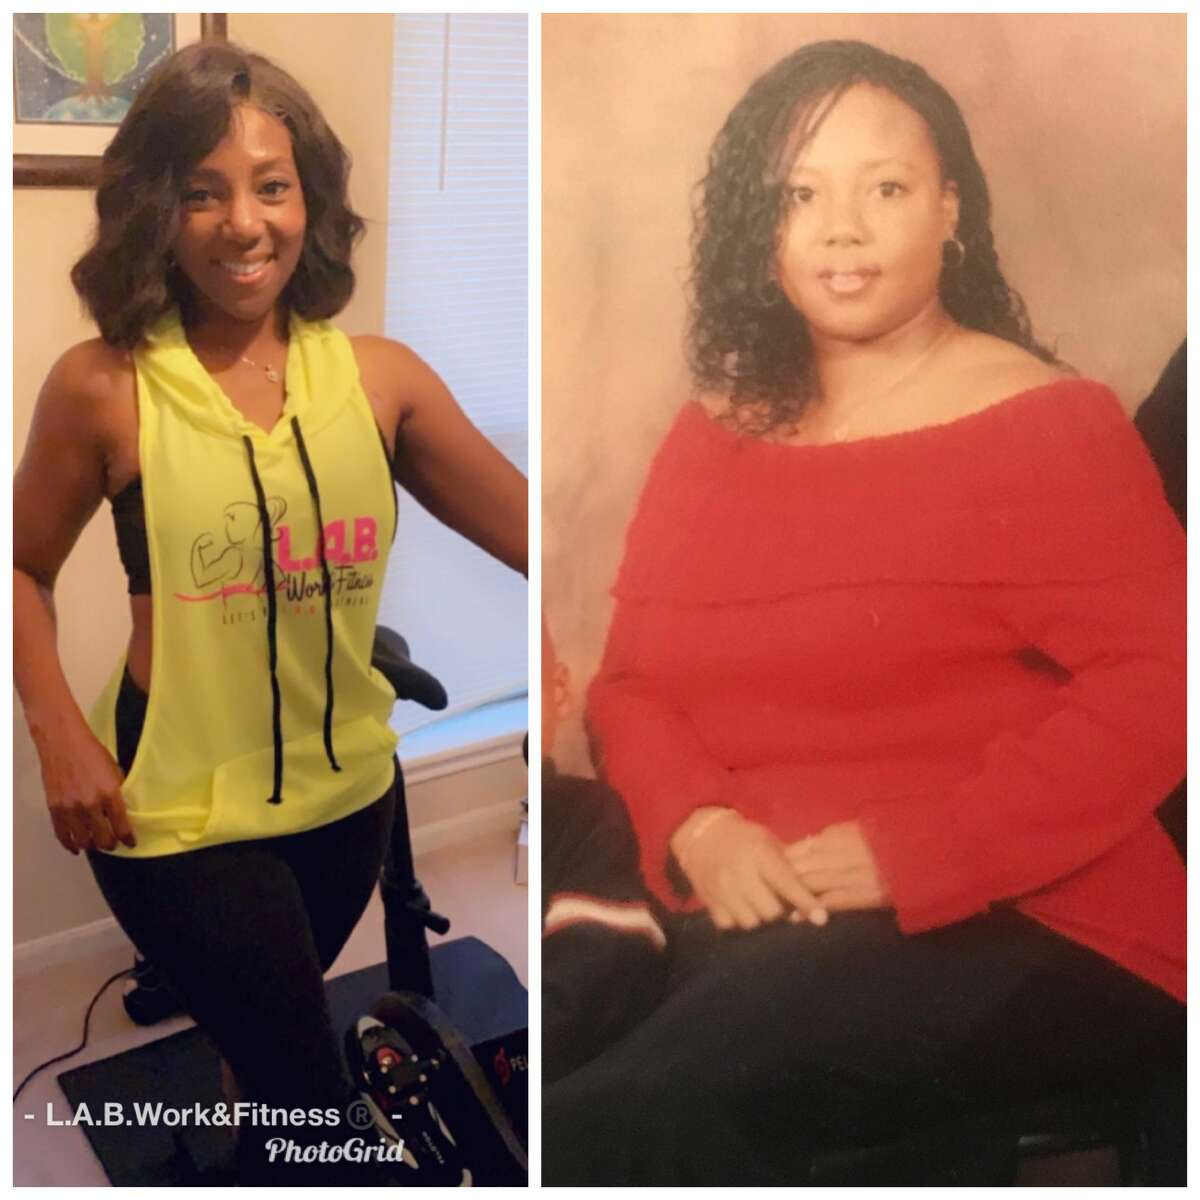 Shenese Colwell shares this before-and-after image from her weight loss journey.